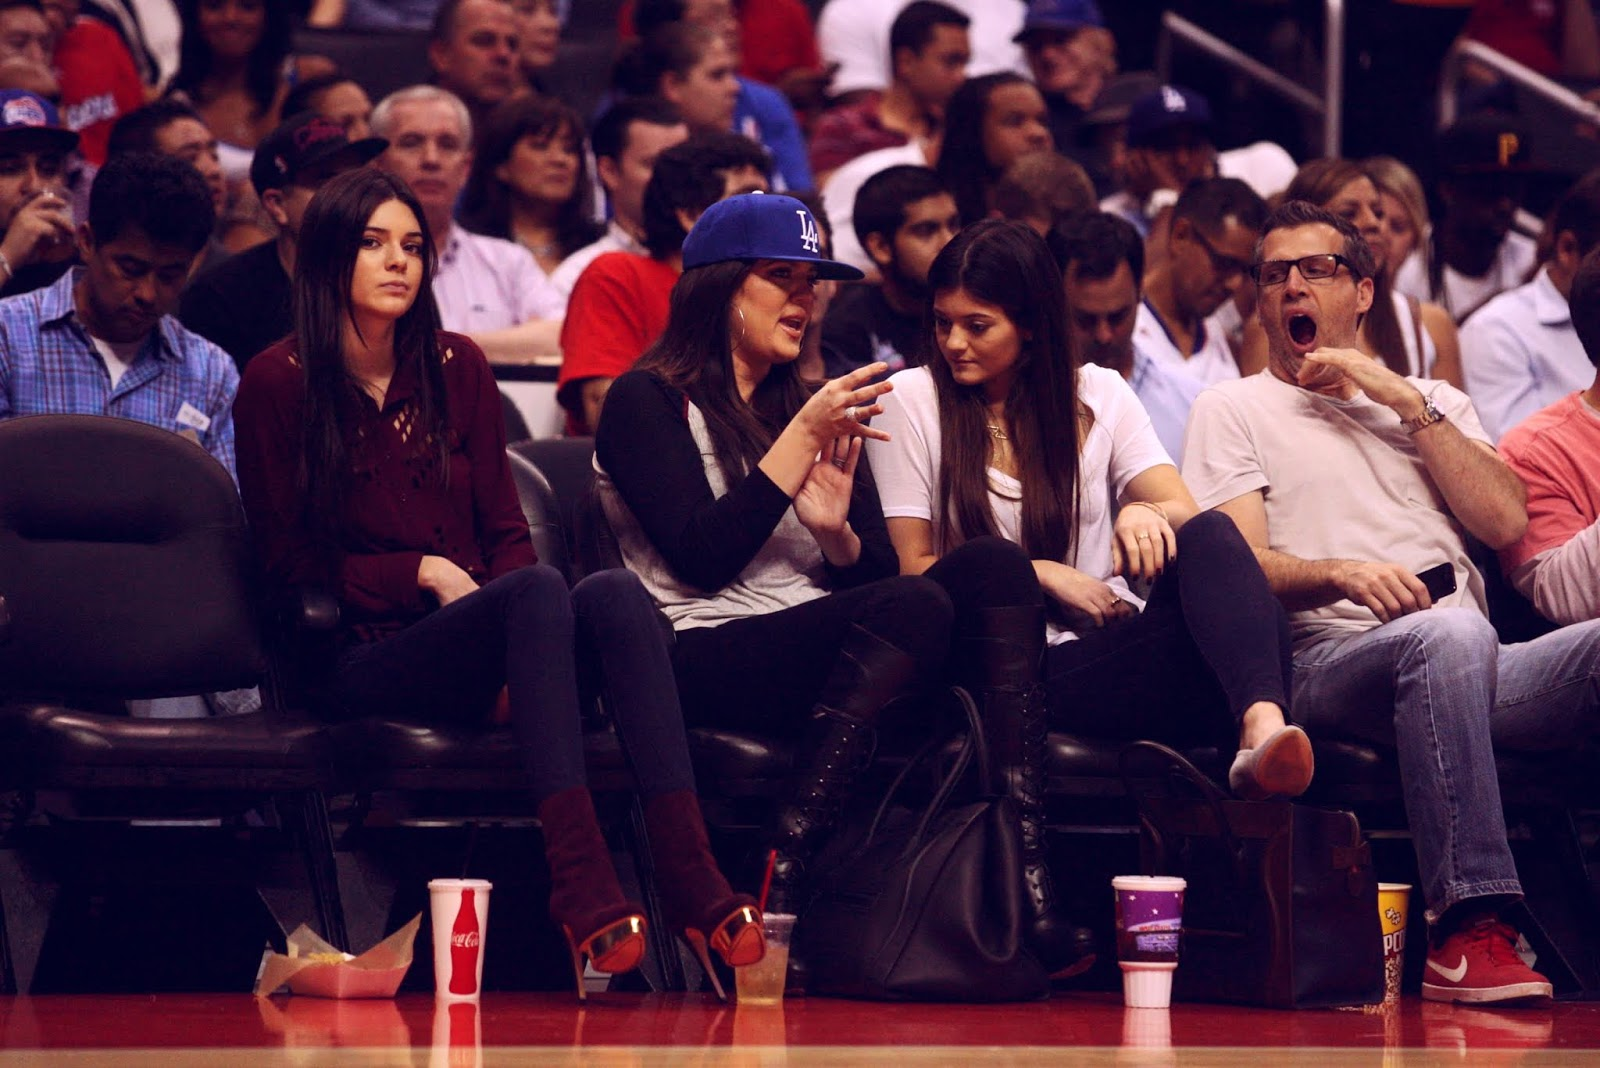 12 - Watching The Los Angeles Clippers Game on October 17, 2012